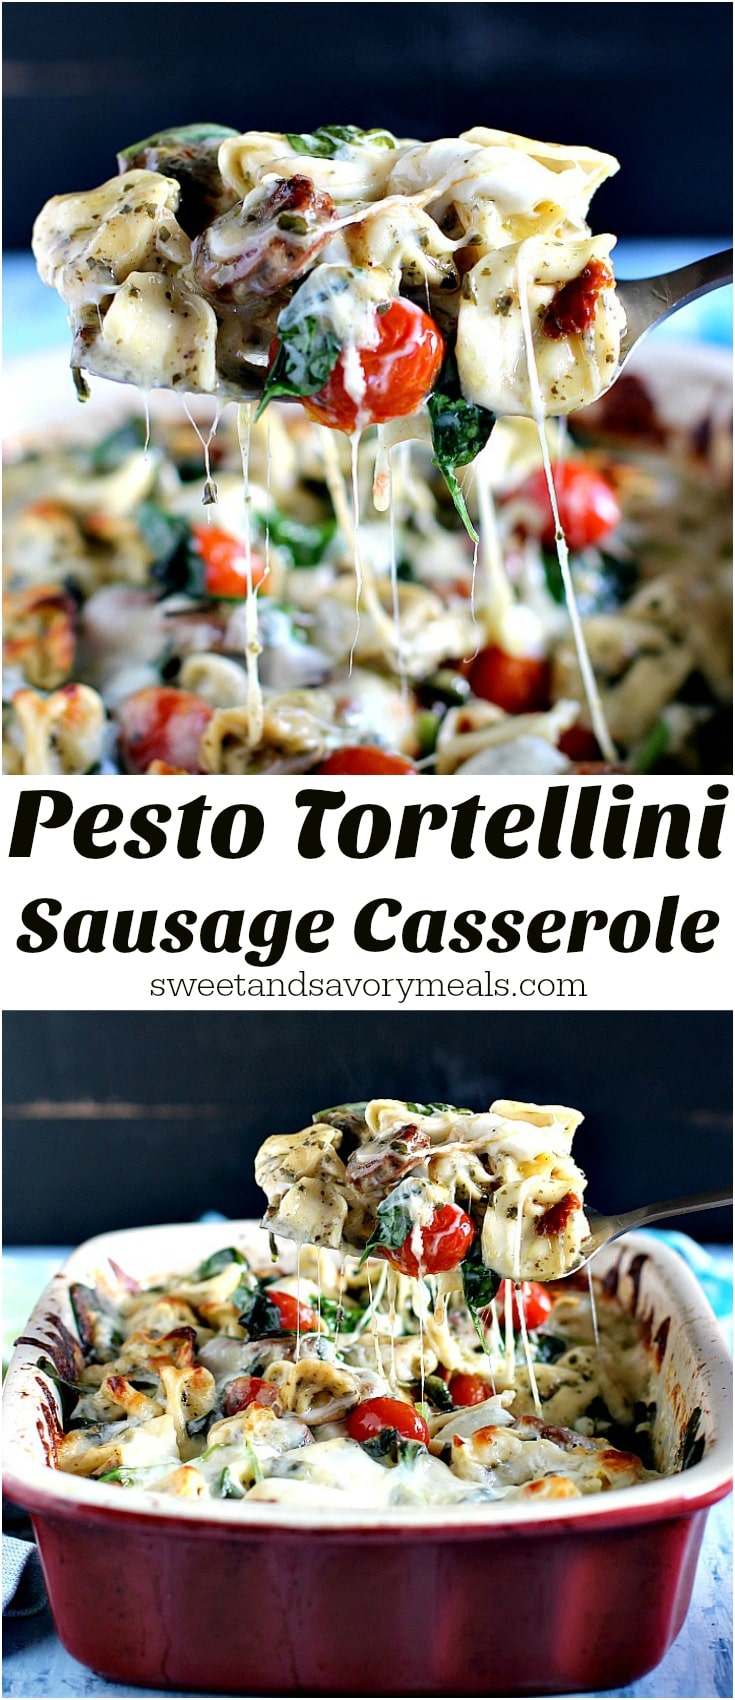 Sausage Pesto Tortellini Casserole made with 6 Ingredients only, is full of flavor, hearty and perfect for delicious and quick weeknight dinners.